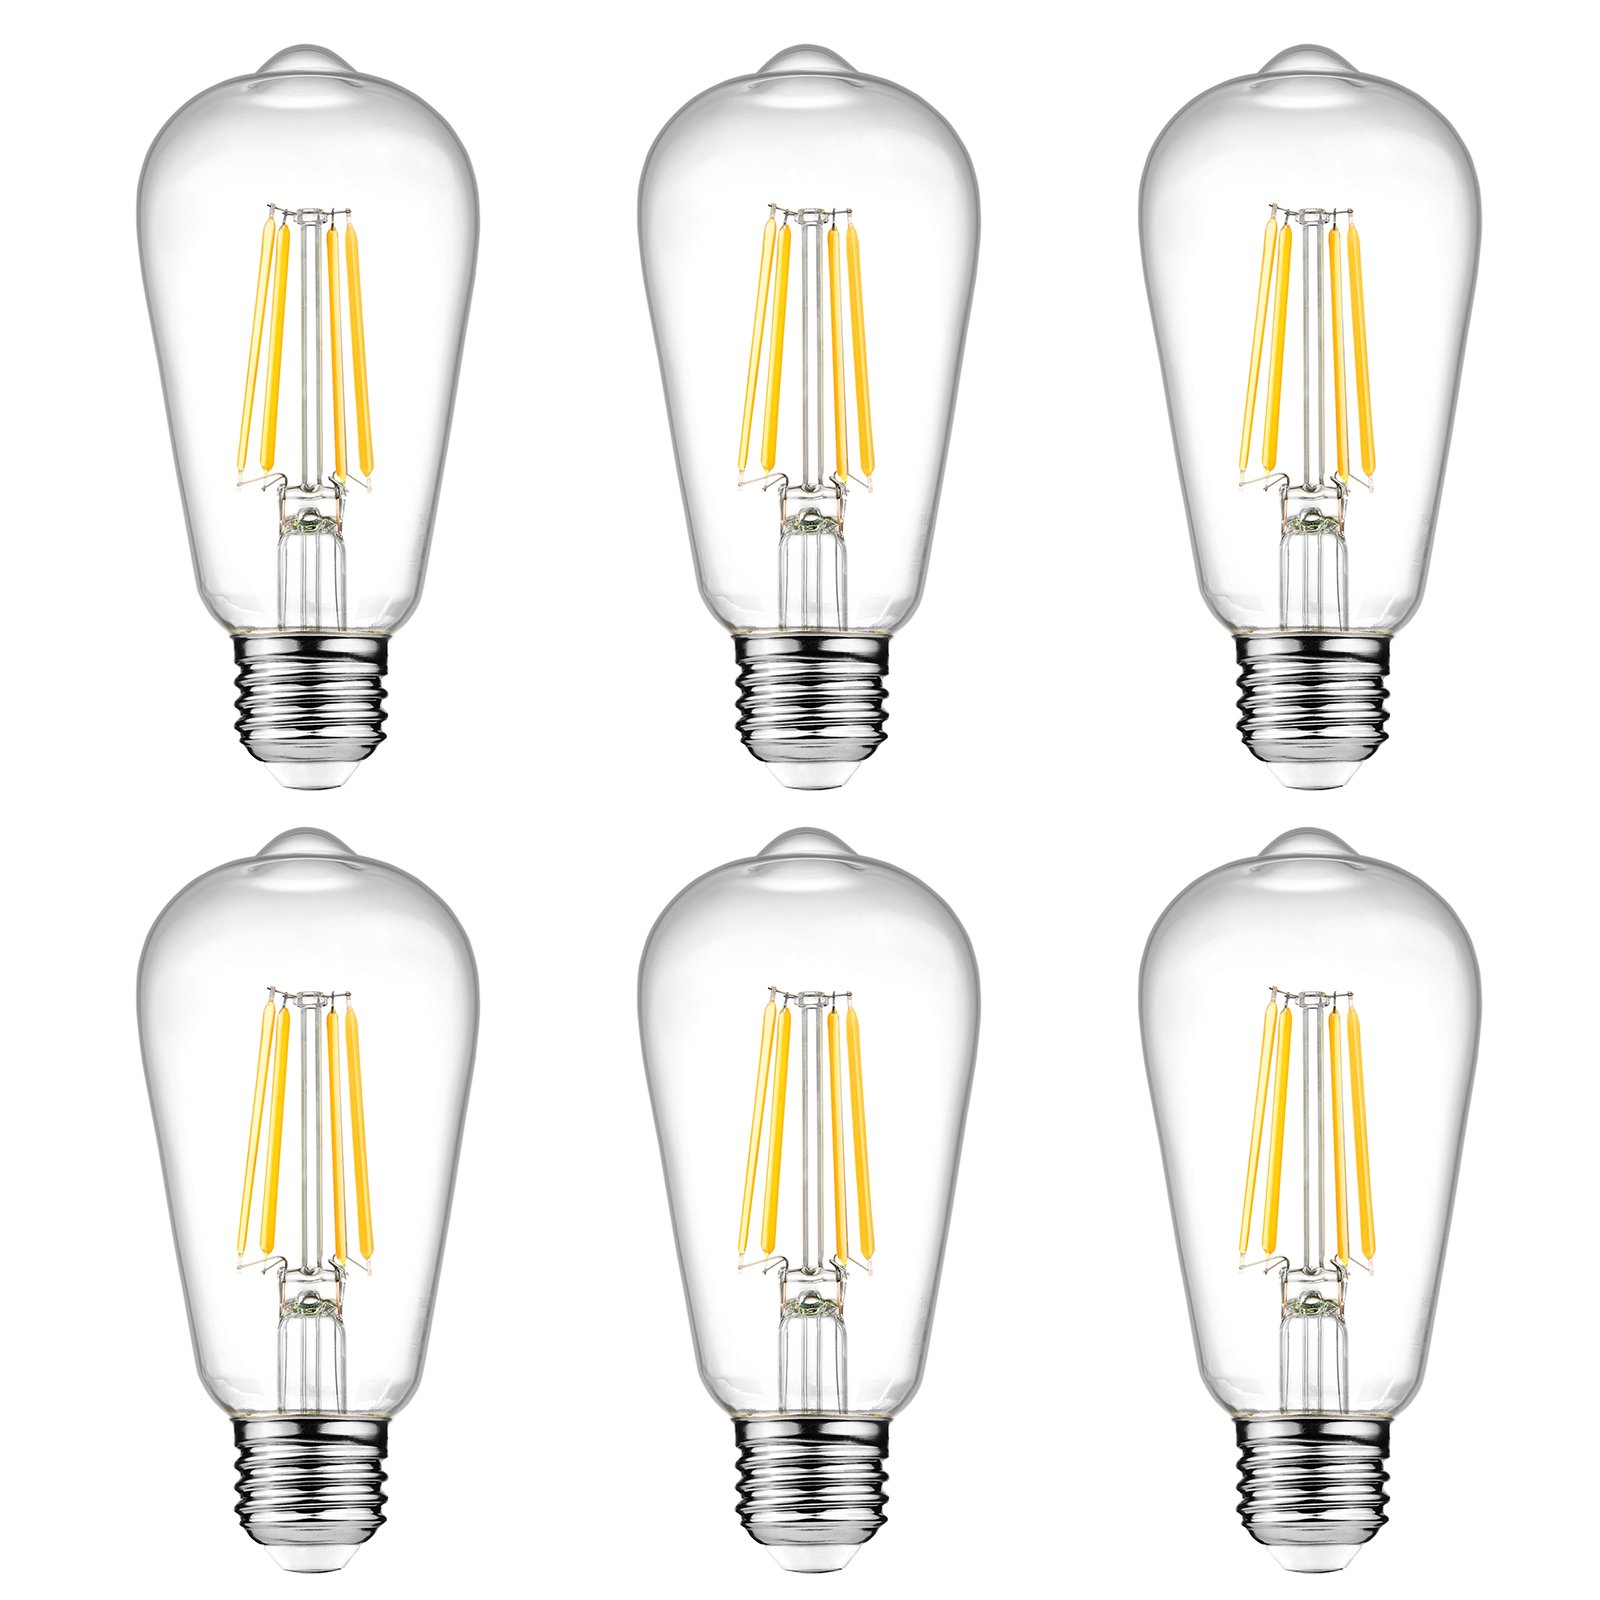 Ascher Vintage LED Edison Bulbs, 6W, Equivalent 60W, 800lm, Warm White 2700K, ST58 Antique LED Filament Bulbs, E26 Medium Base, Non Dimmable, Clear Glass, Pack of 6